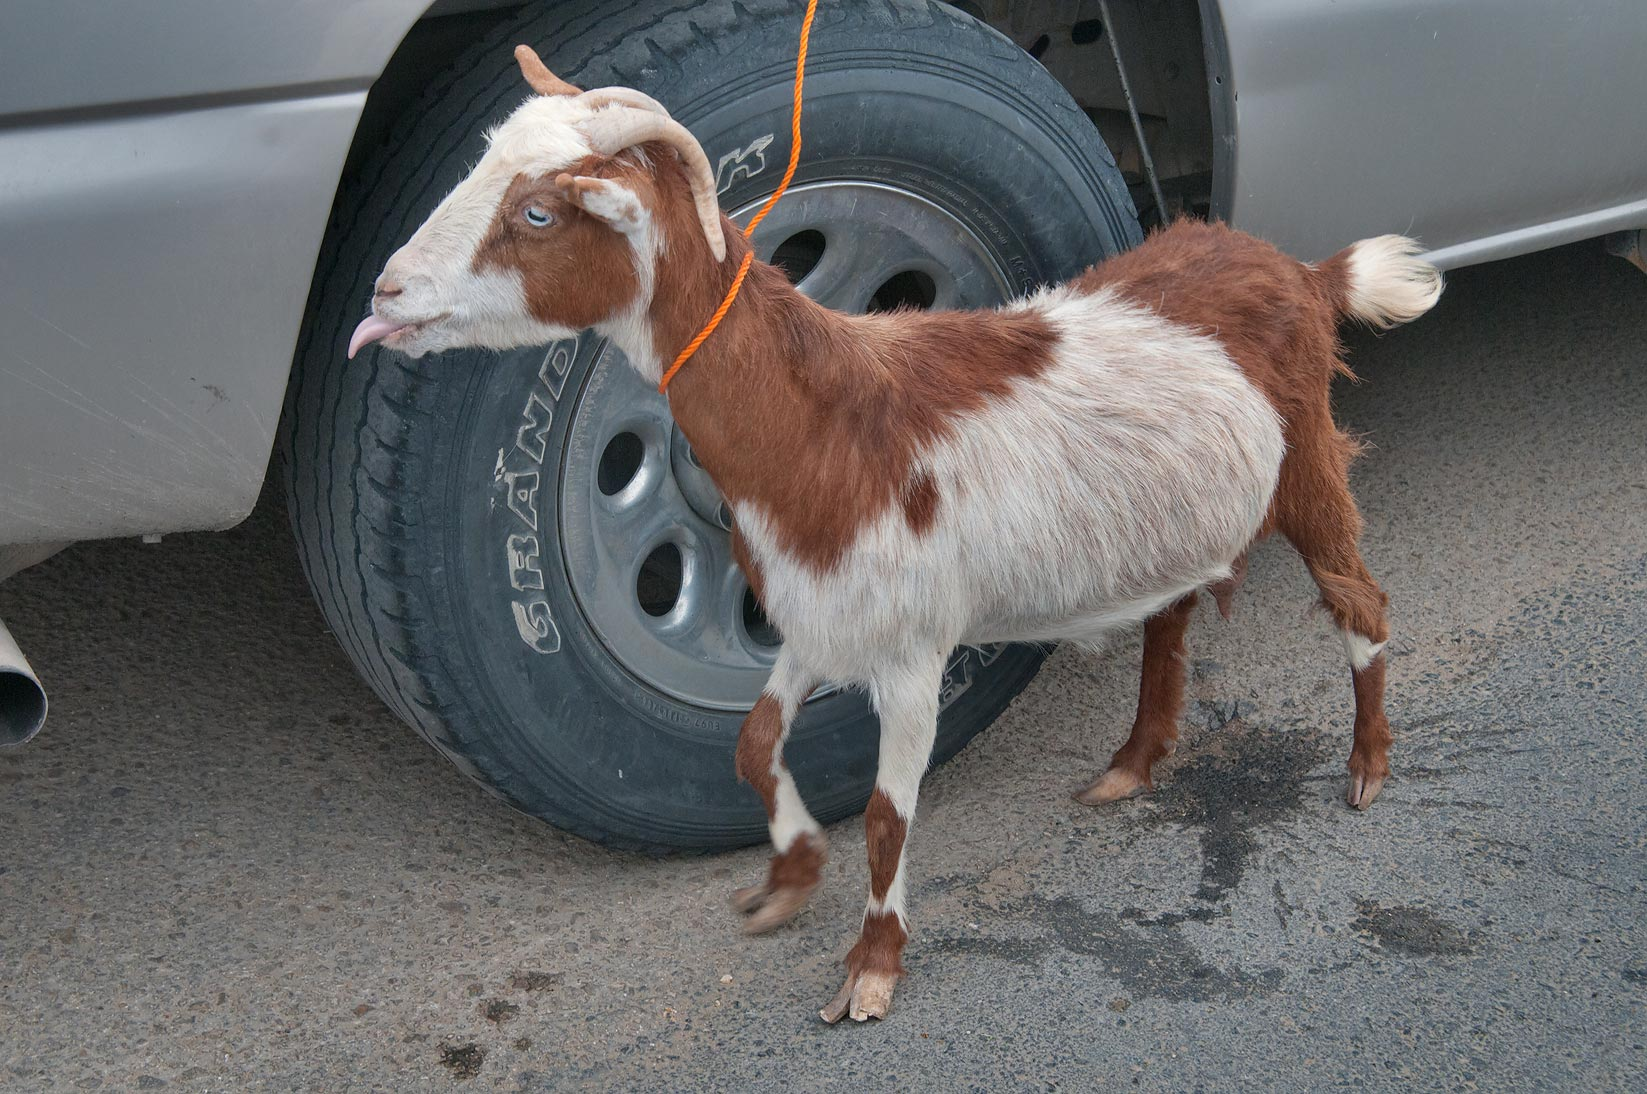 Goat tied to a car, sold in Sheep Market, Wholesale Markets area. Doha, Qatar